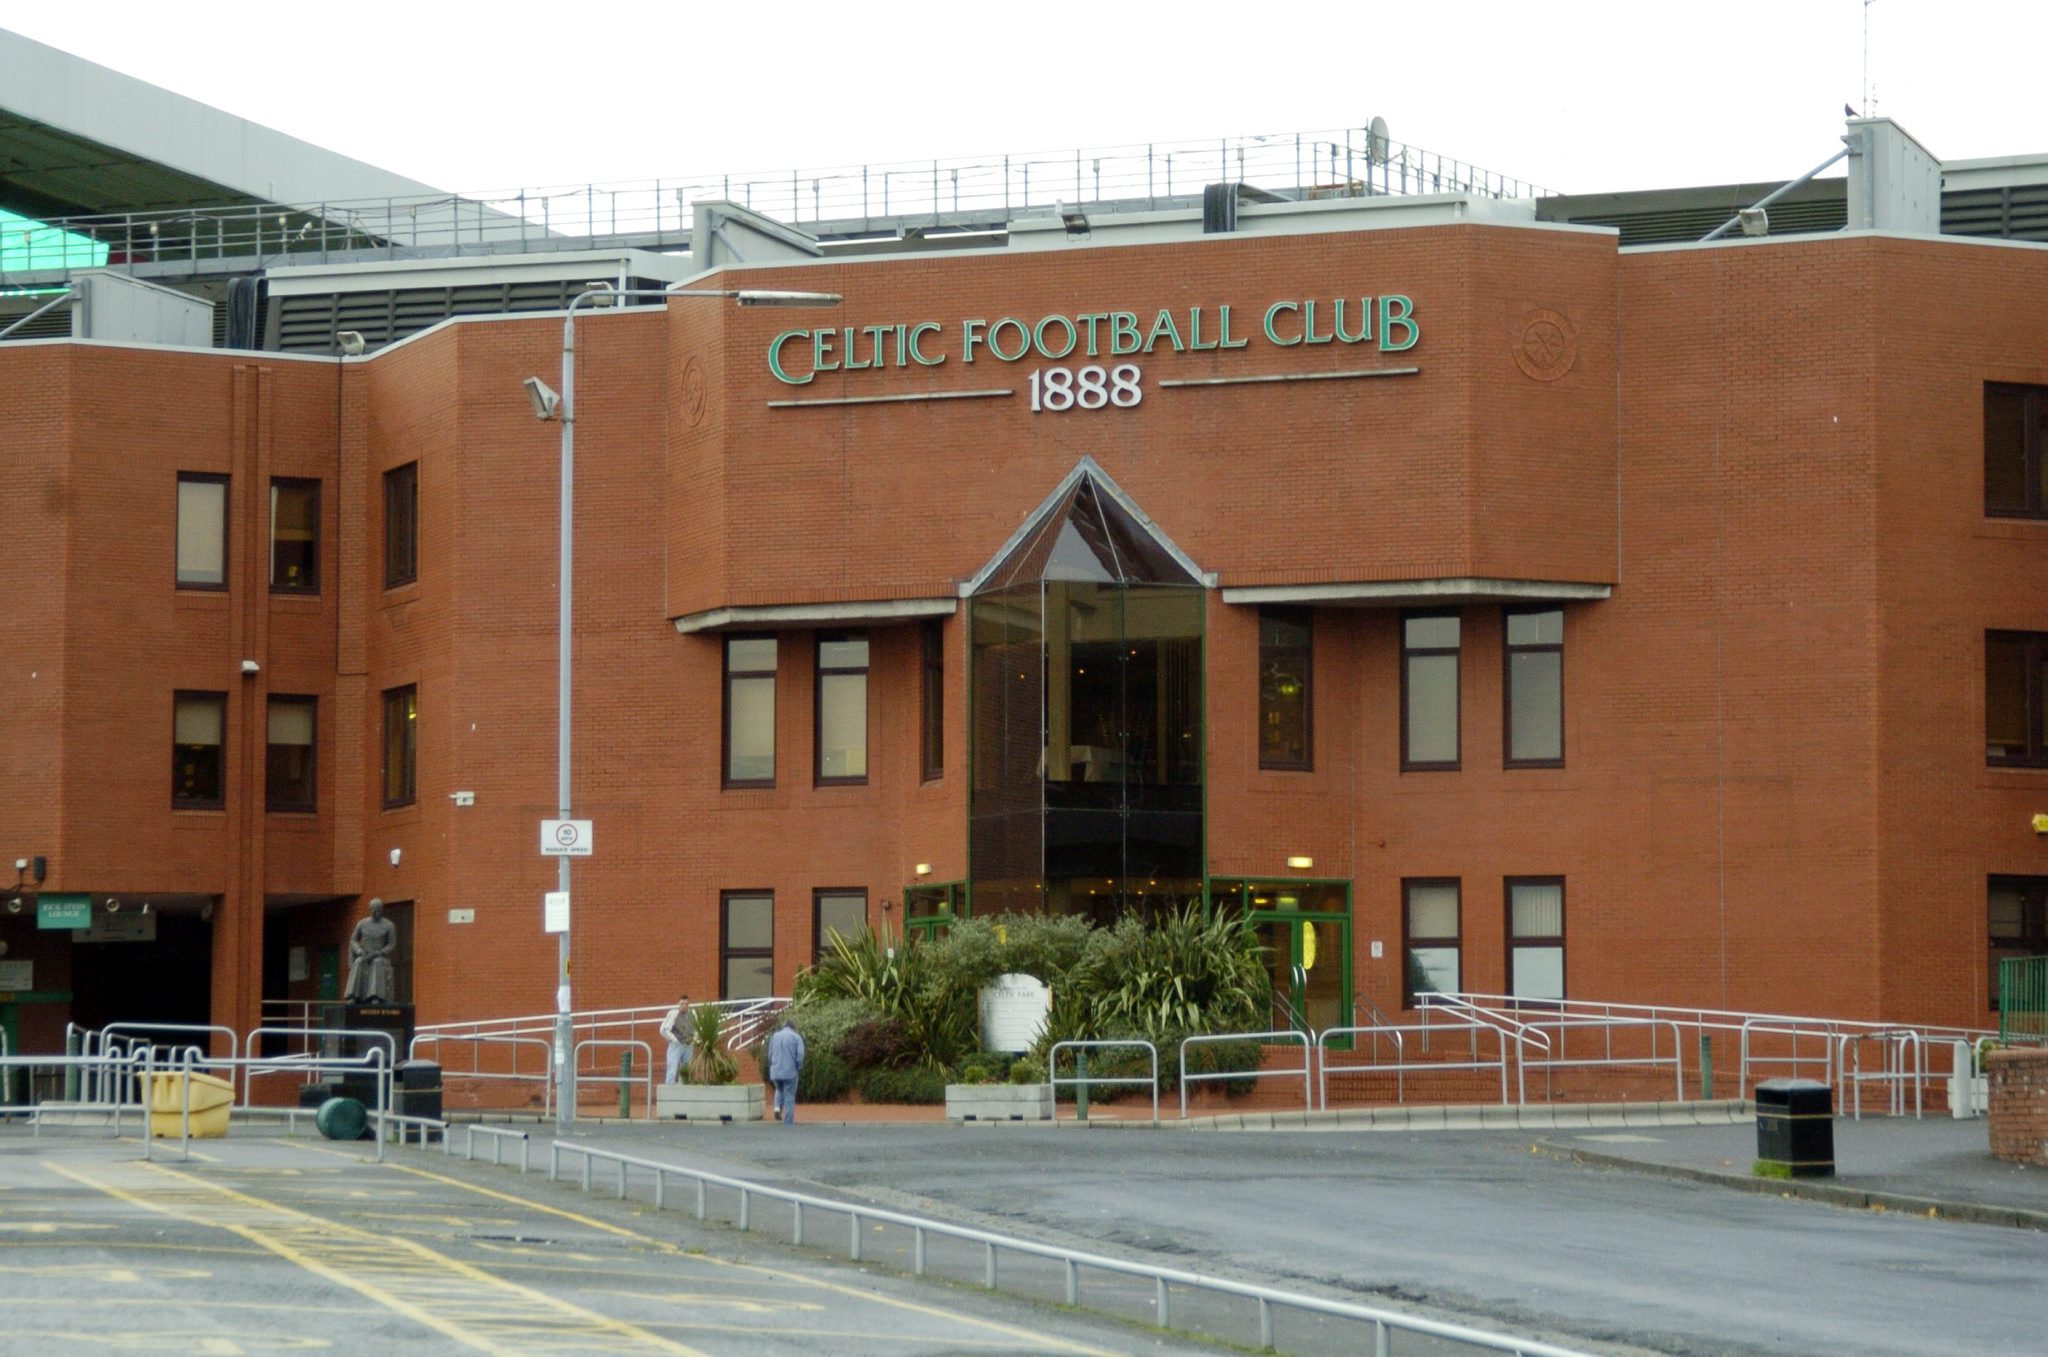 Celtic Park football stadium in Parkhead